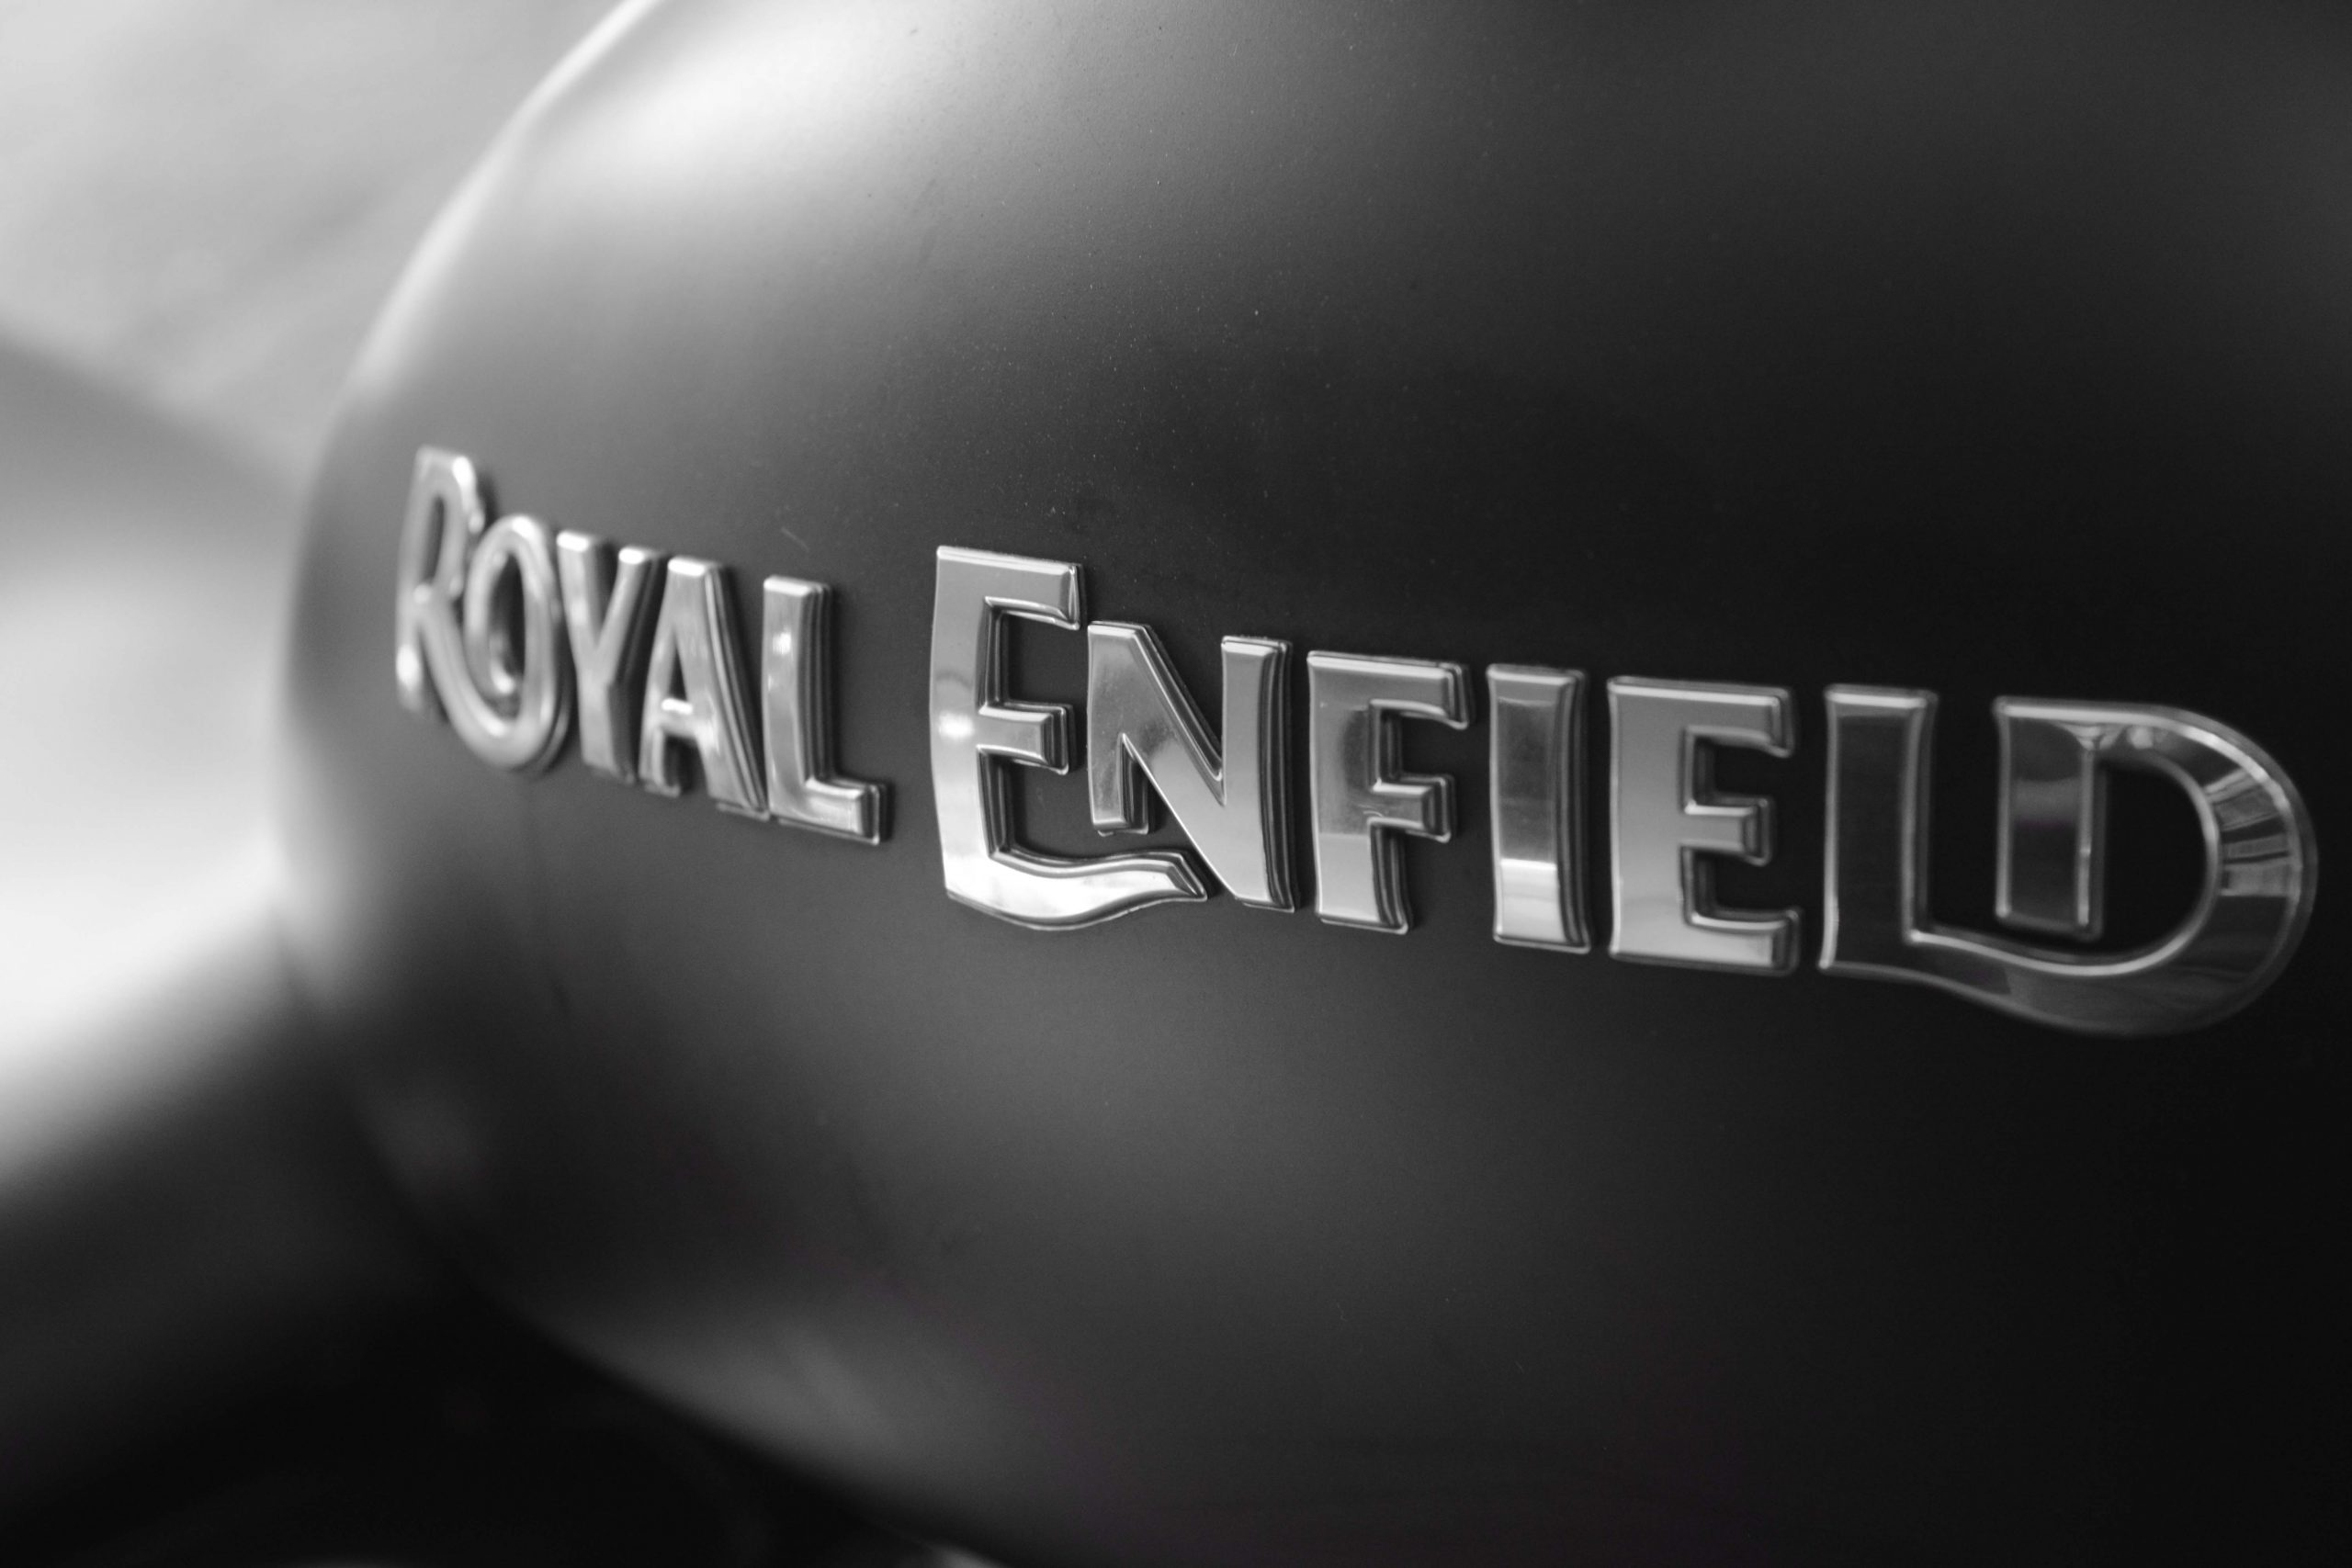 Cars Motos Wallpaper Wallpaper Royal Enfield Logo Bike Bullet Royal Enfield Black White Wallpaper For You The Best Wallpaper For Desktop Mobile